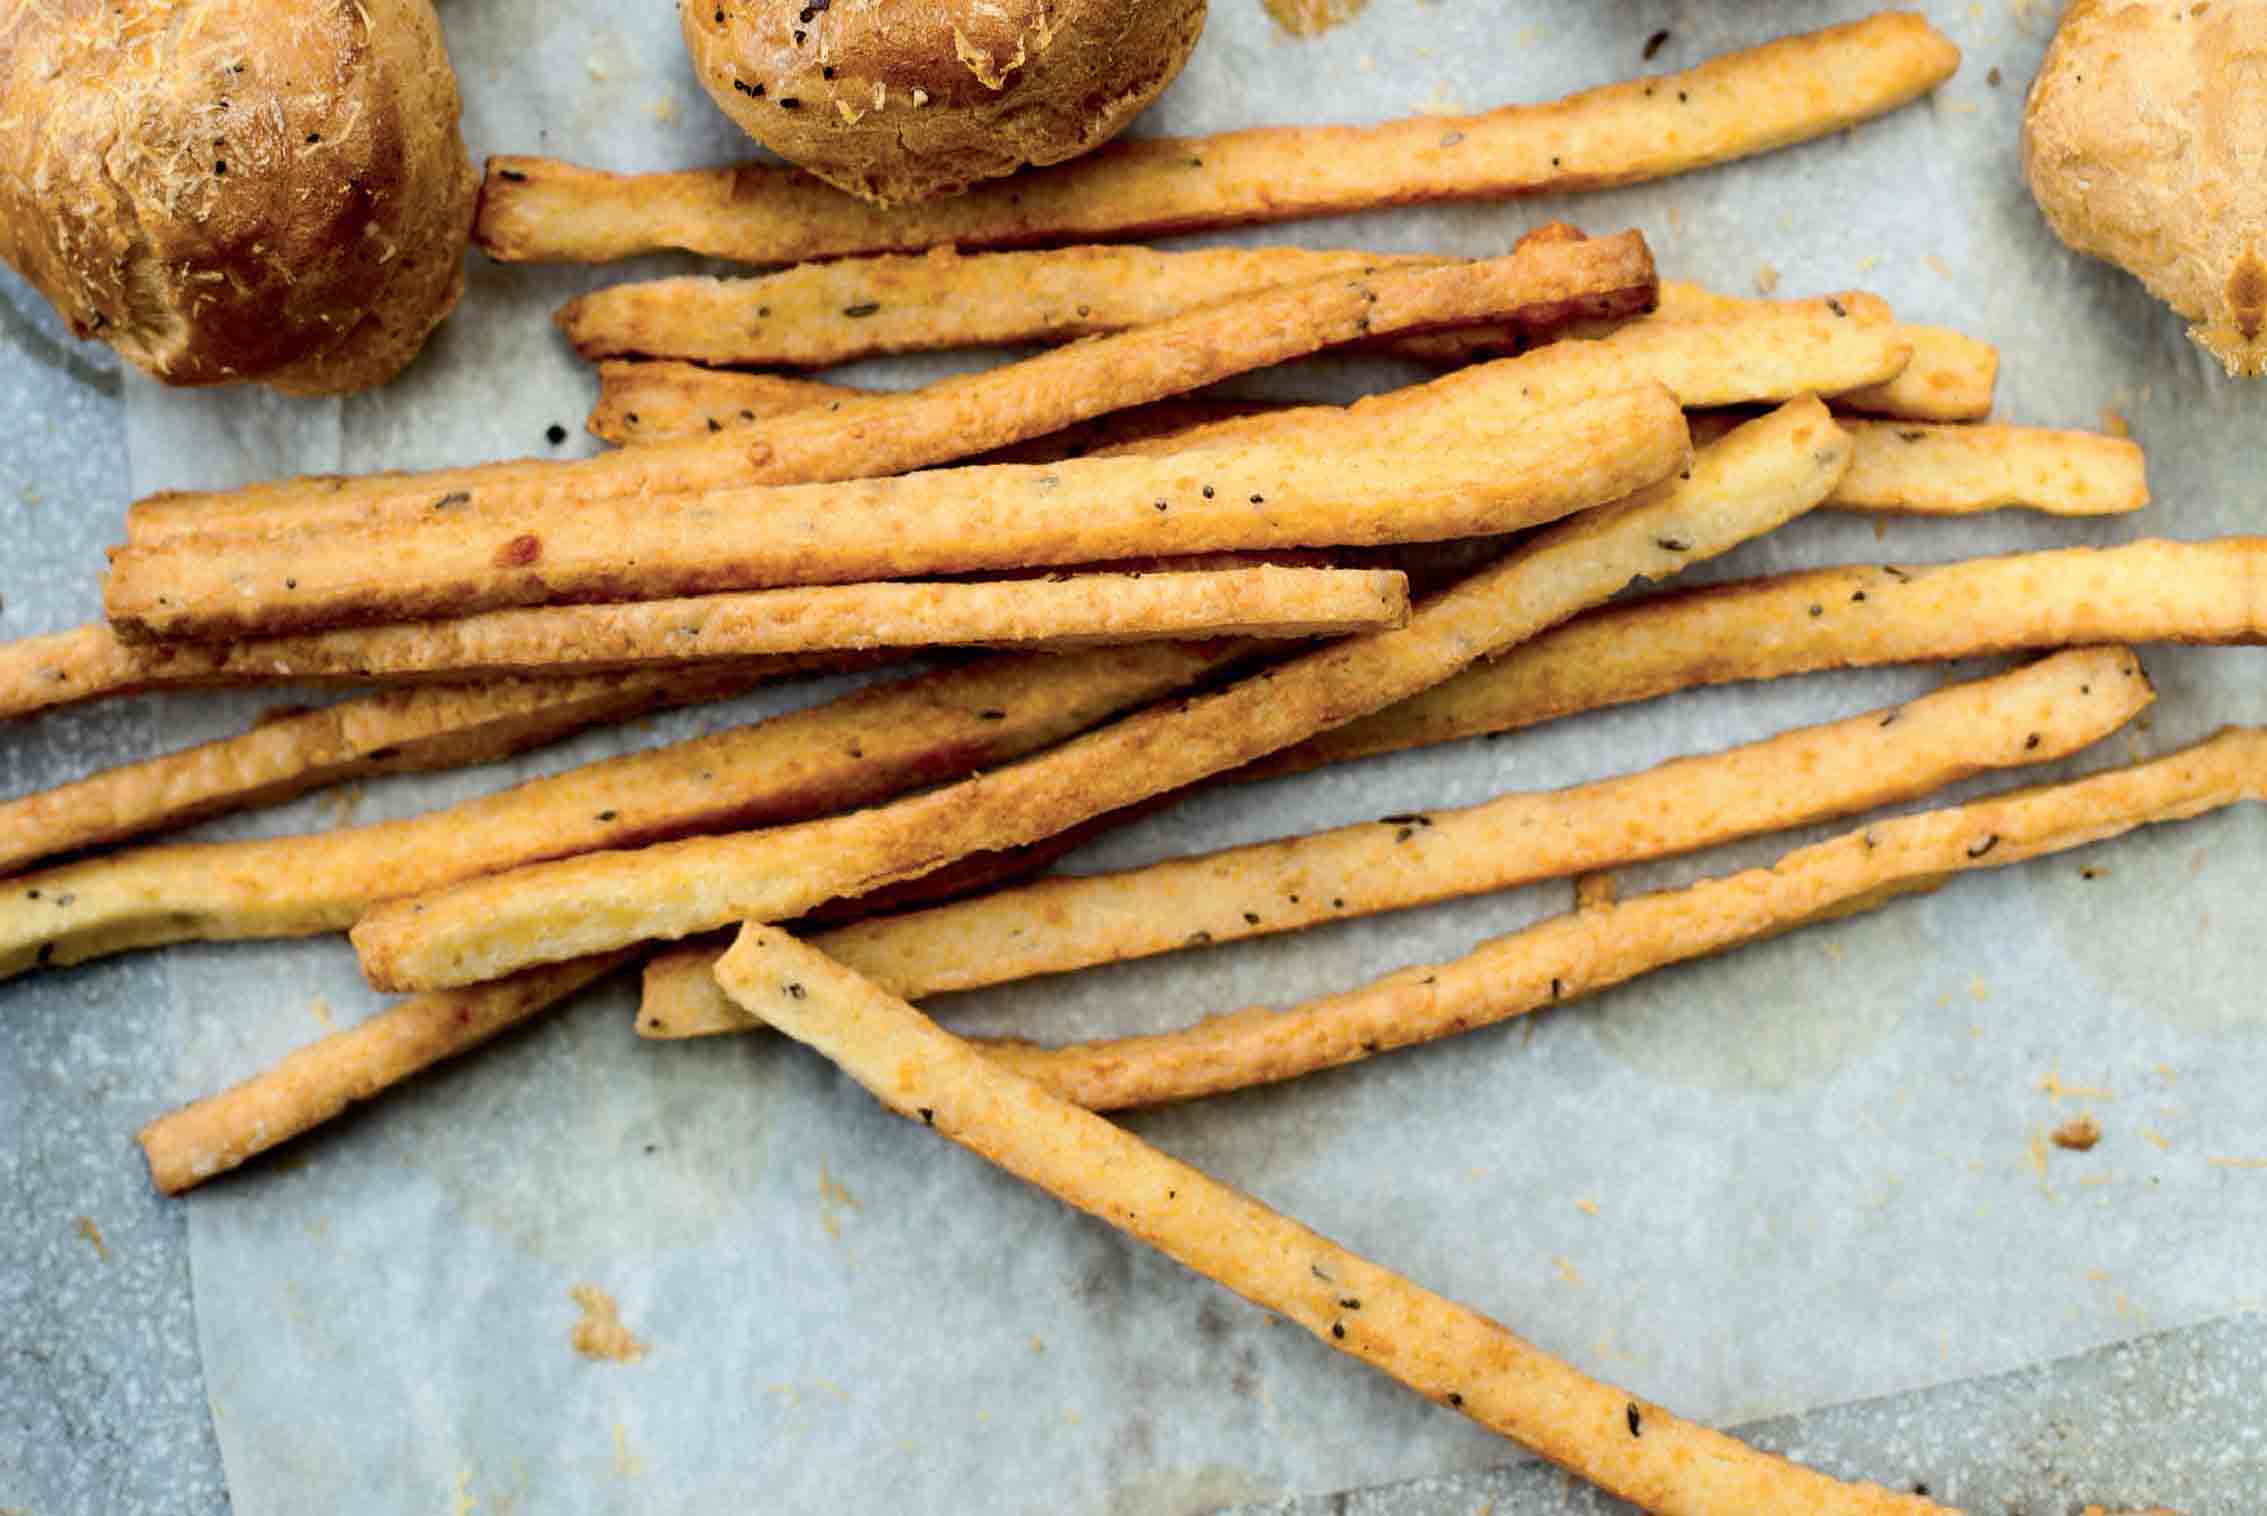 Cheddar cheese straws with caraway